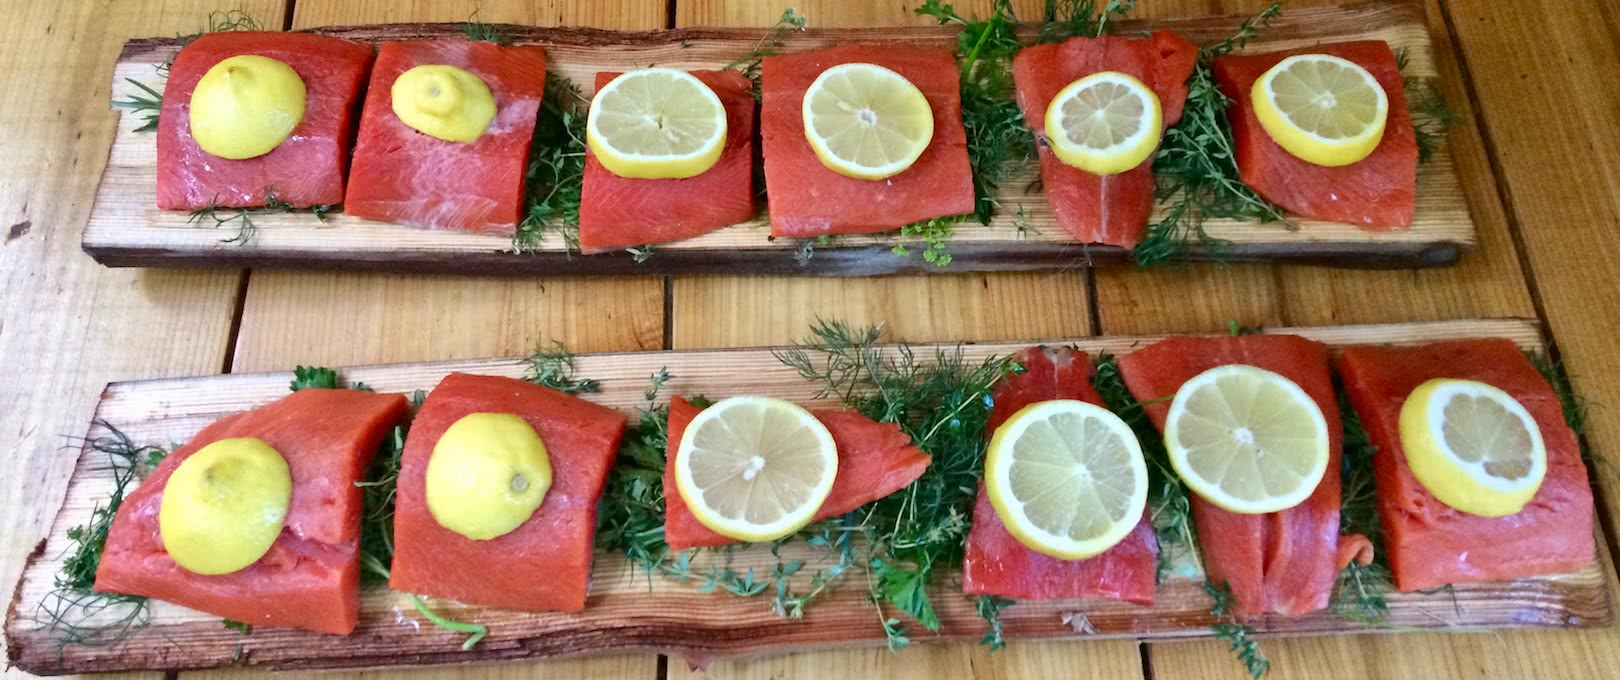 Cedar planked salmon ready for the BBQ showing our commitment to west coast cuisine